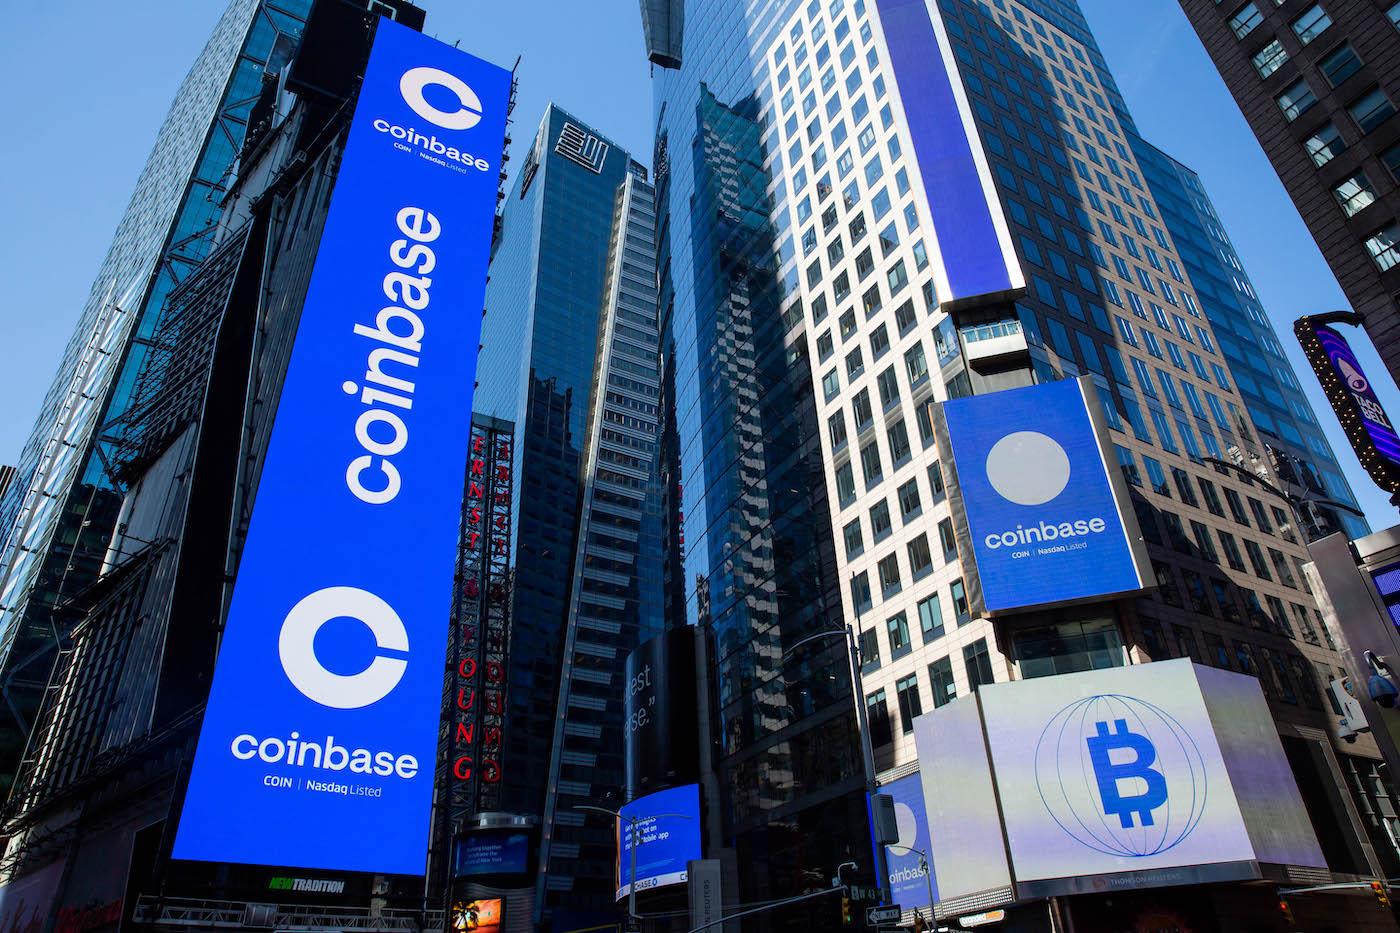 Investment Research Firm Says Coinbase Revenue to Decline Despite Beating Estimates